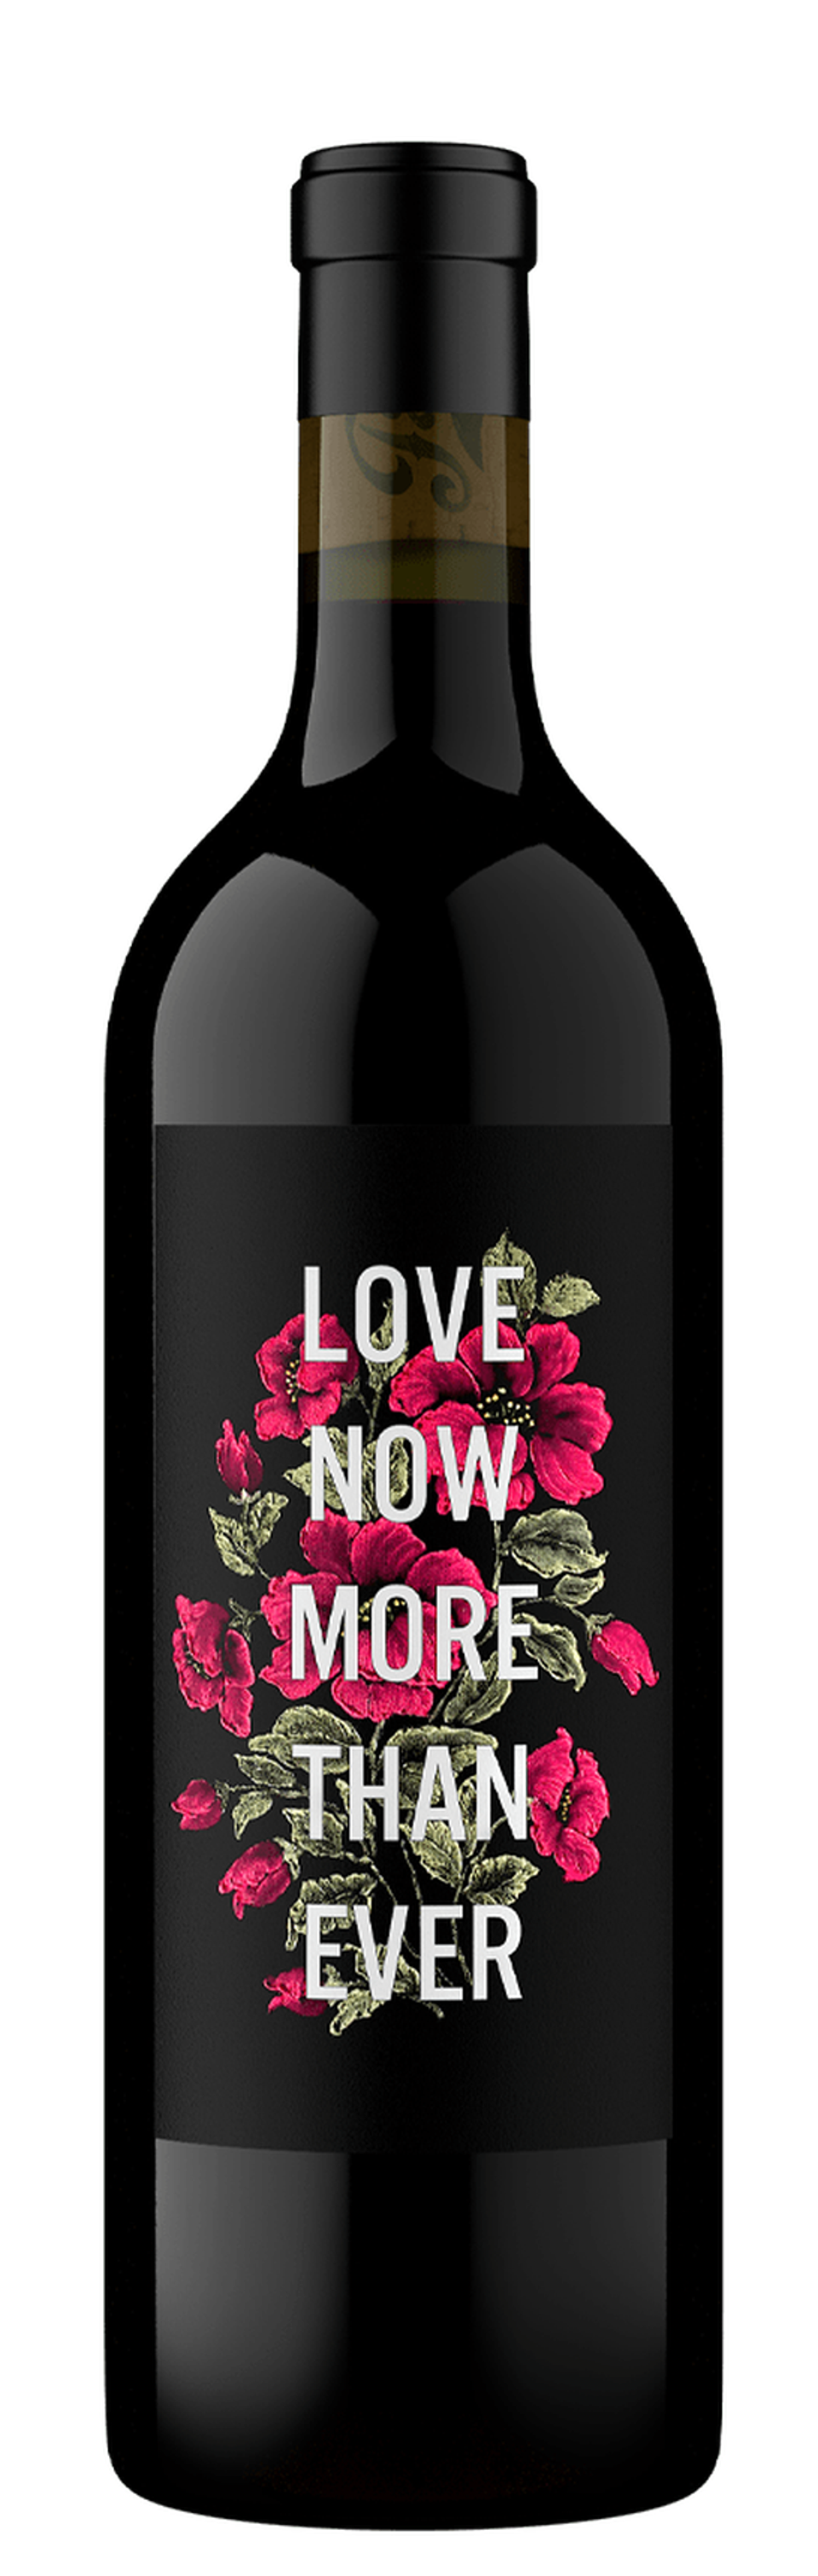 Tank Garage Winery 2016 Love Now More Than Ever, Red Wine